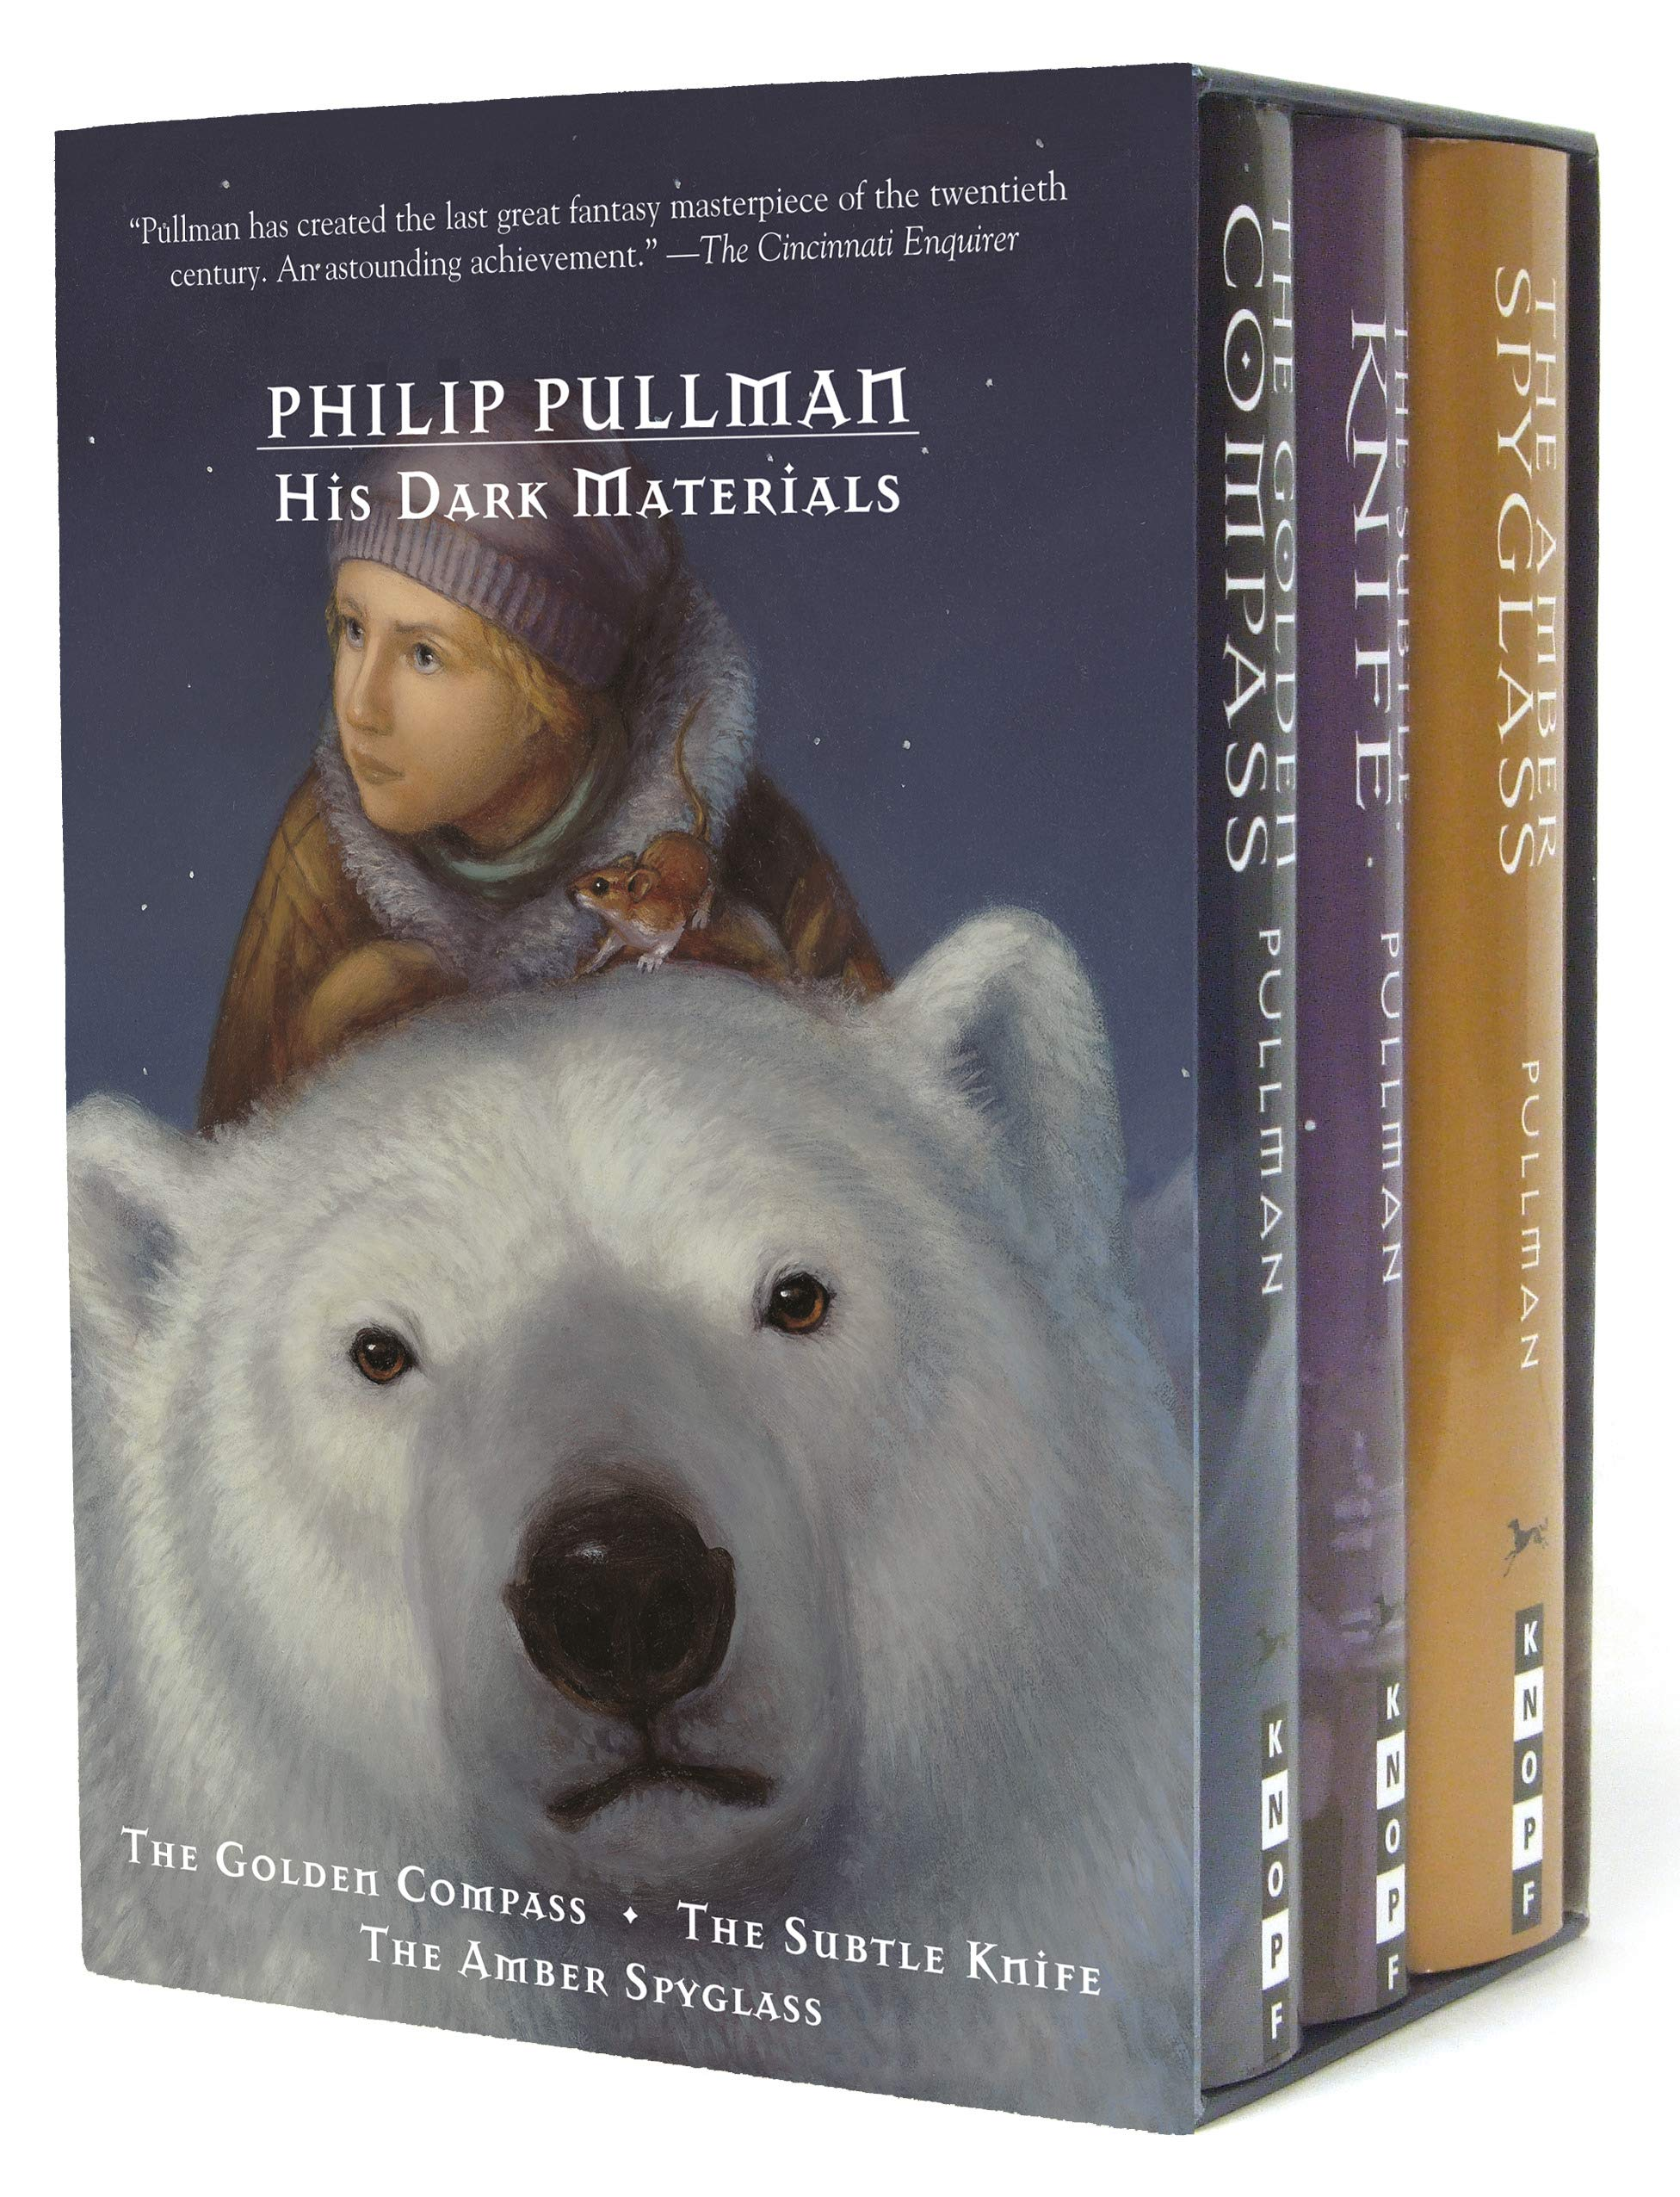 The Golden Compass / The Subtle Knife / The Amber Spyglass (His Dark Materials) by Pullman, Philip